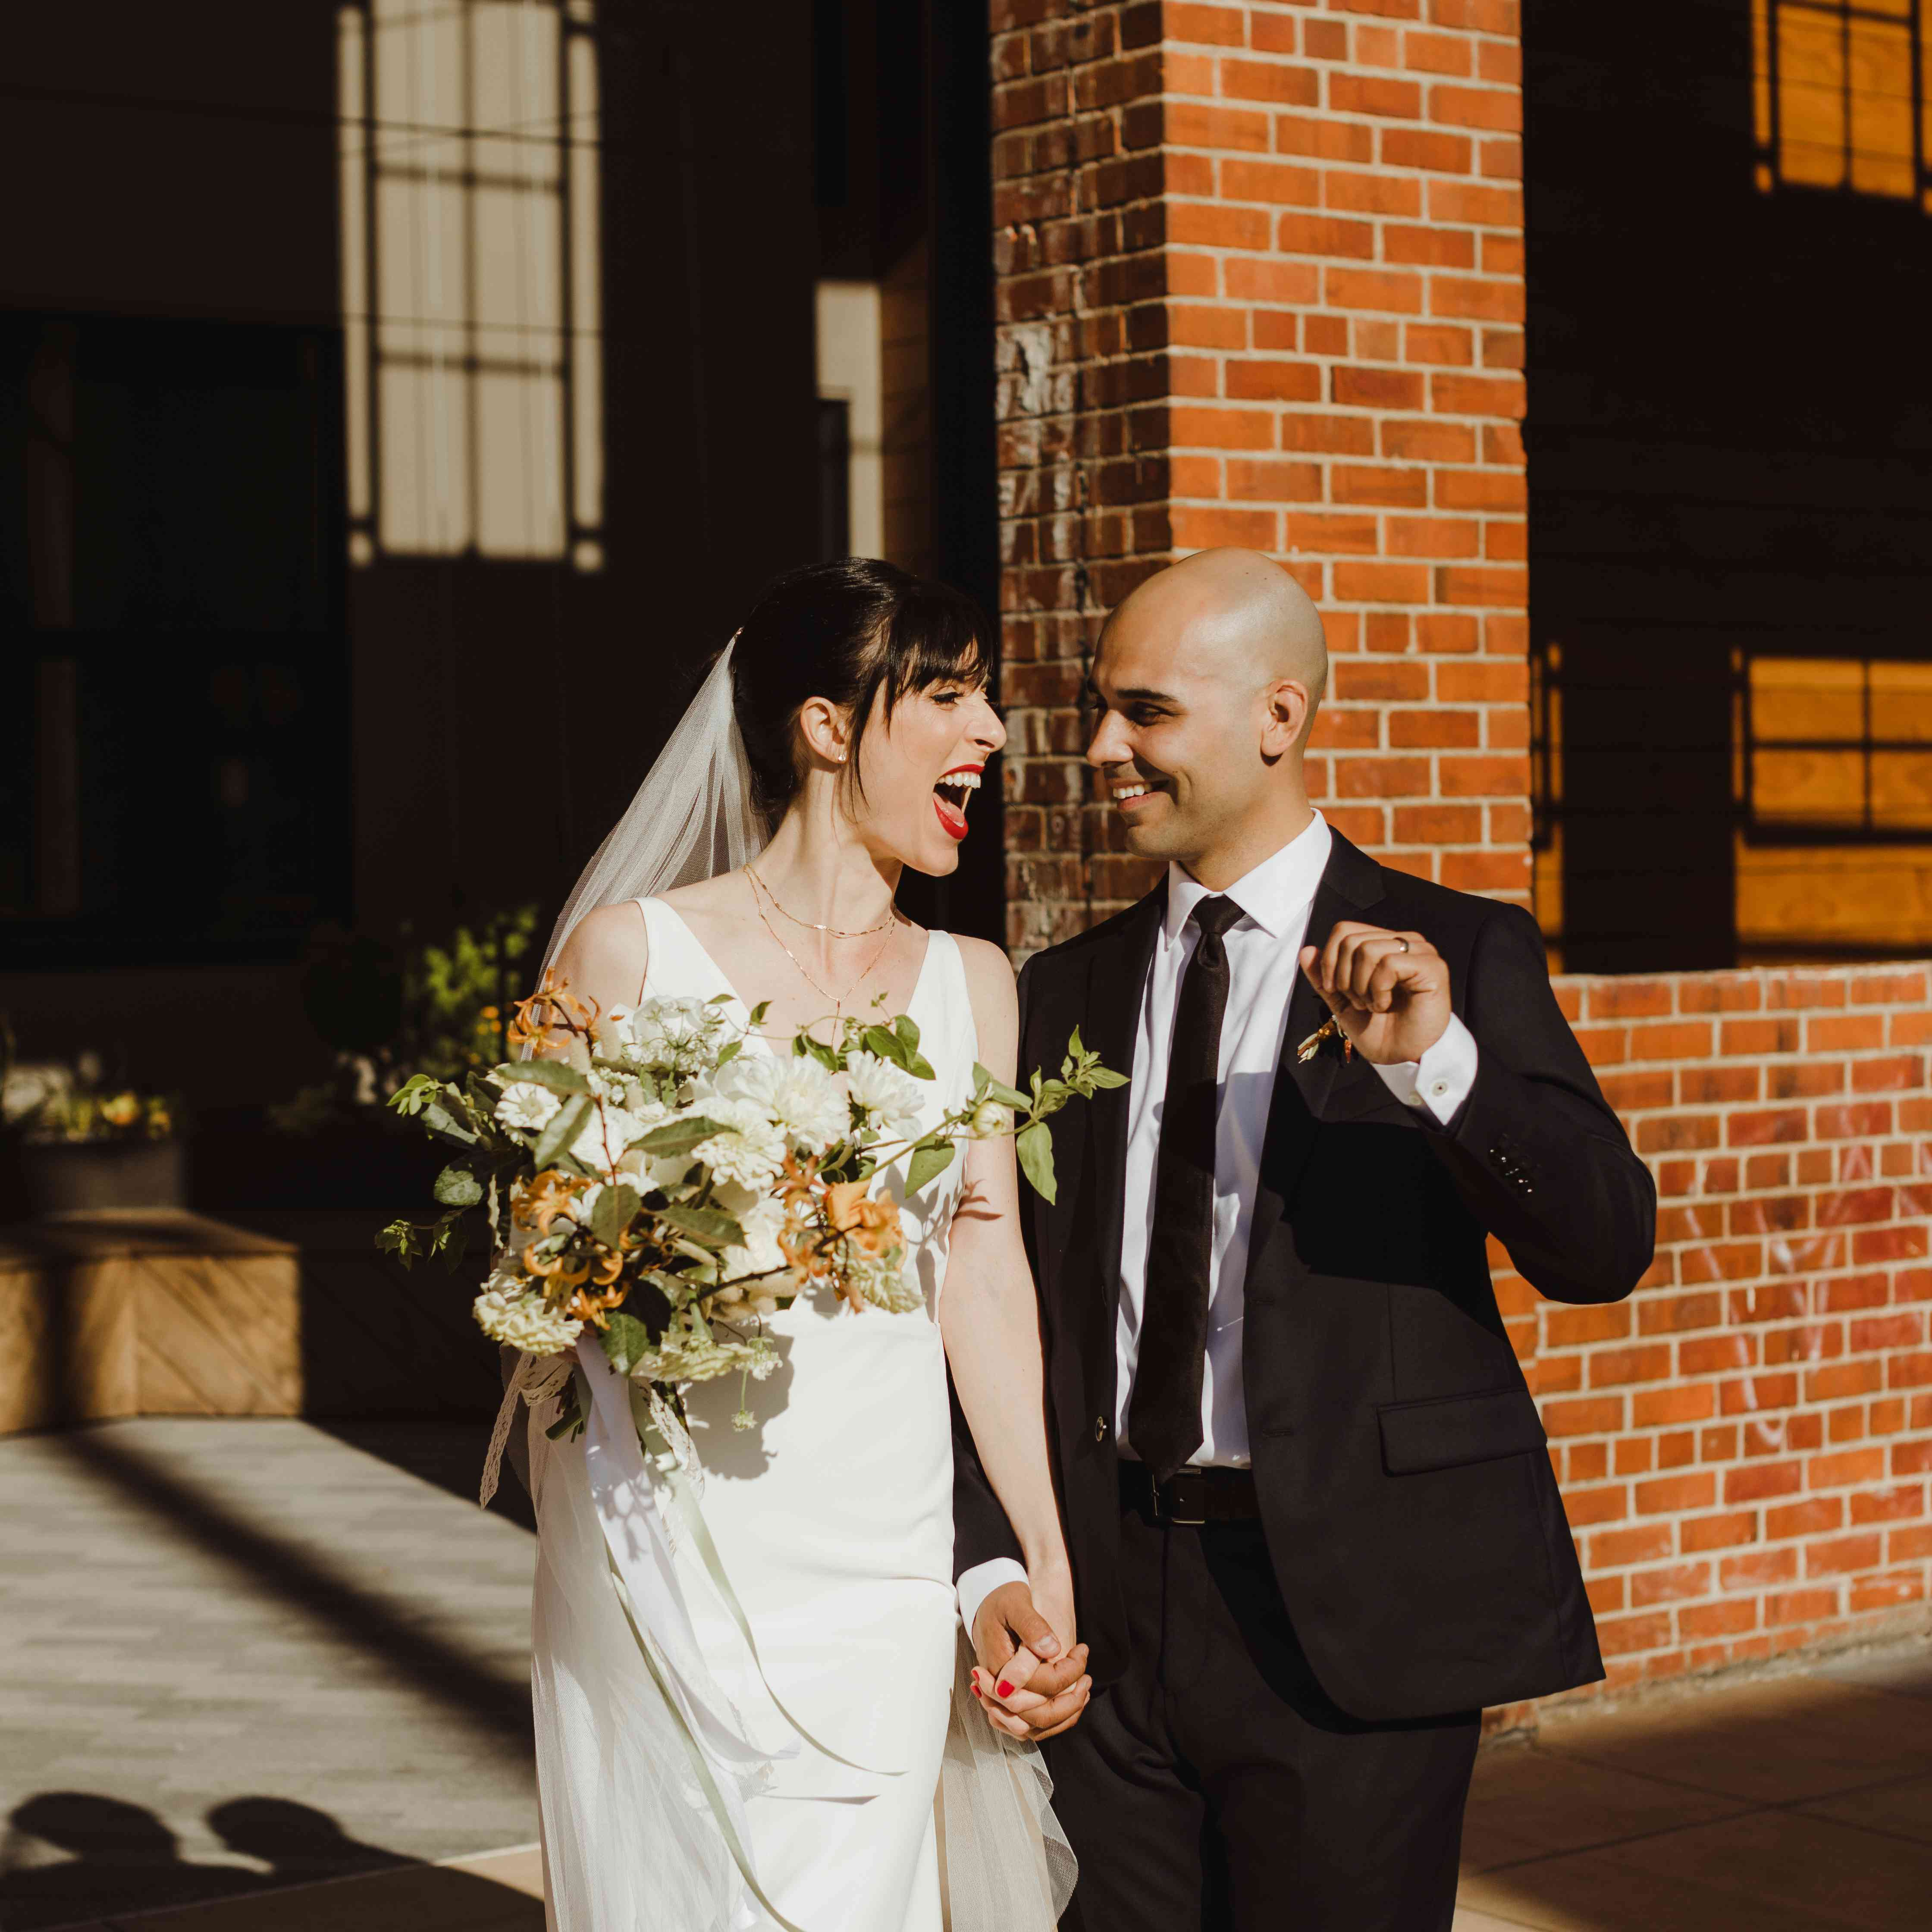 <p>just married happy bride and groom</p><br><br>